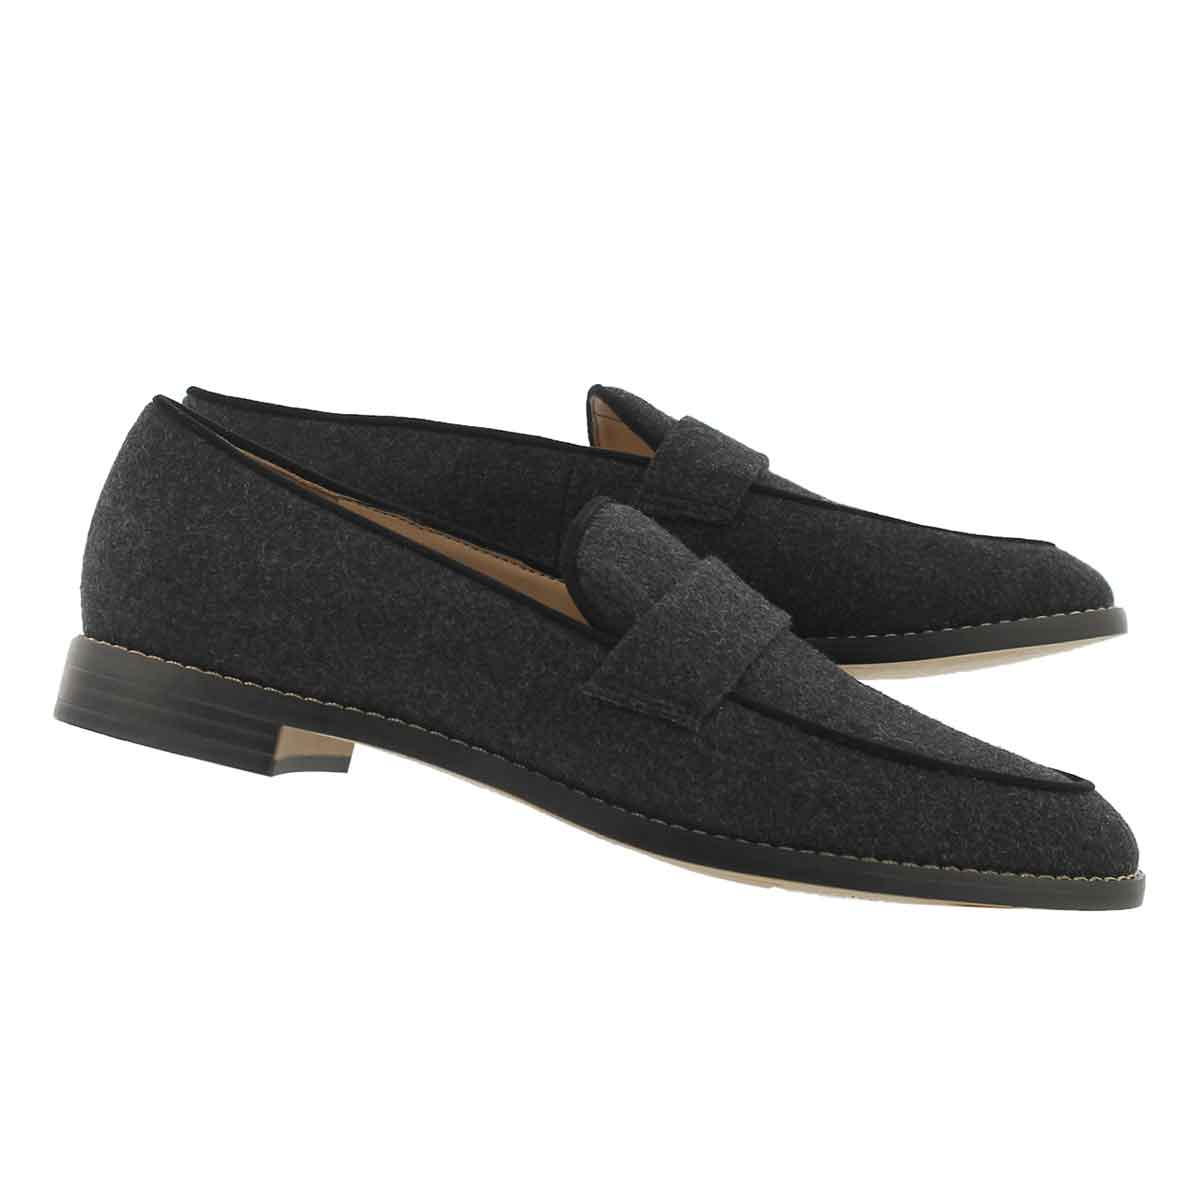 Lds Hudley grey casual slip on shoe